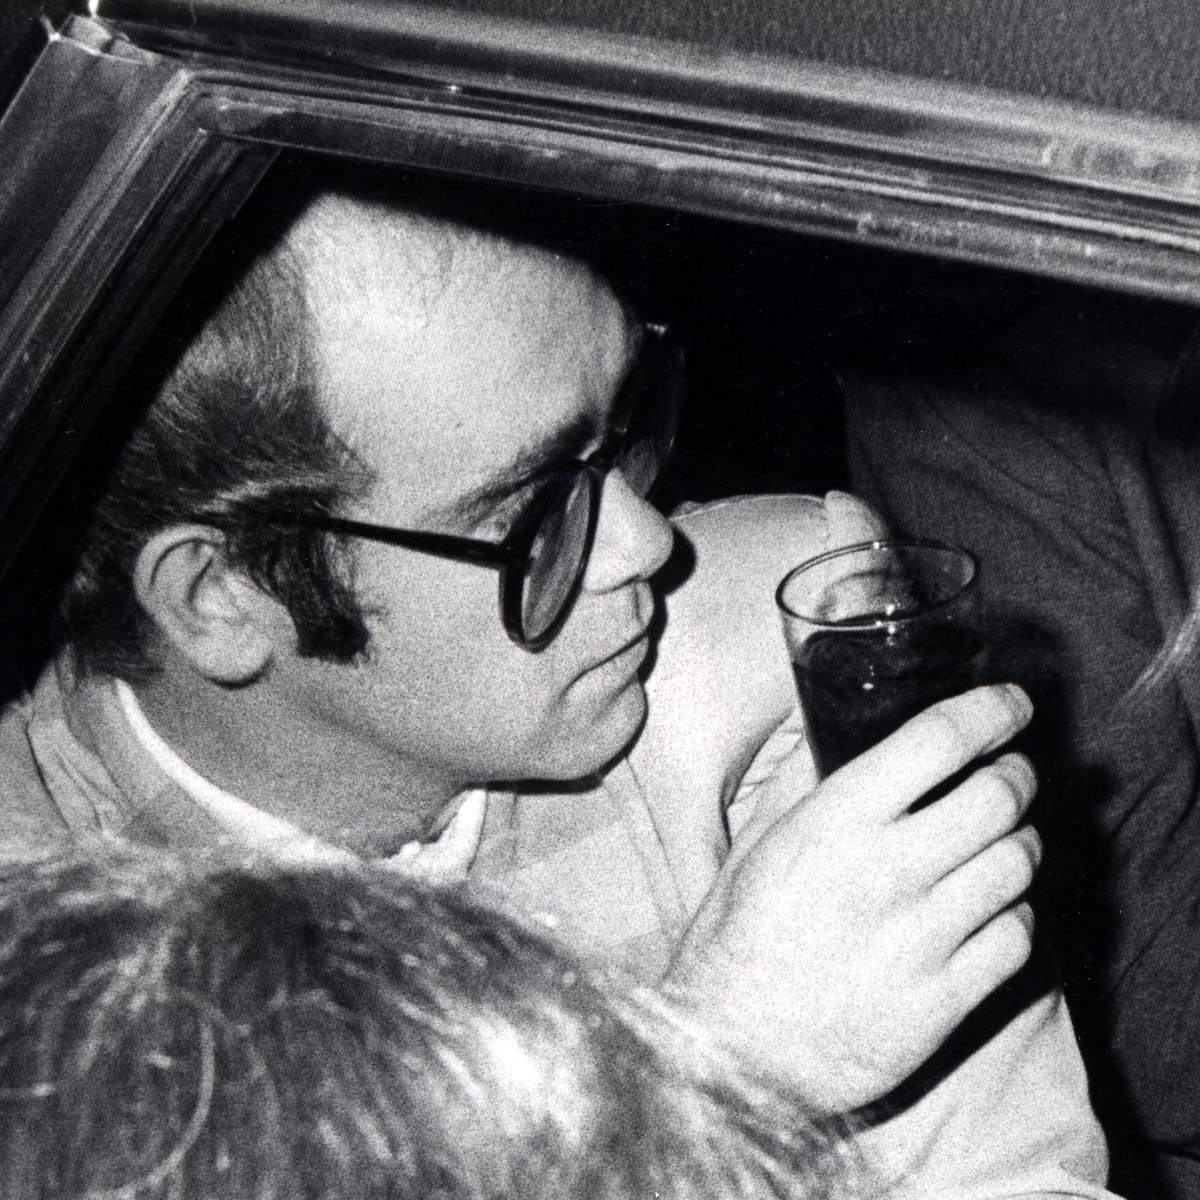 Elton John's Past Struggles With Drugs and Alcohol - Biography